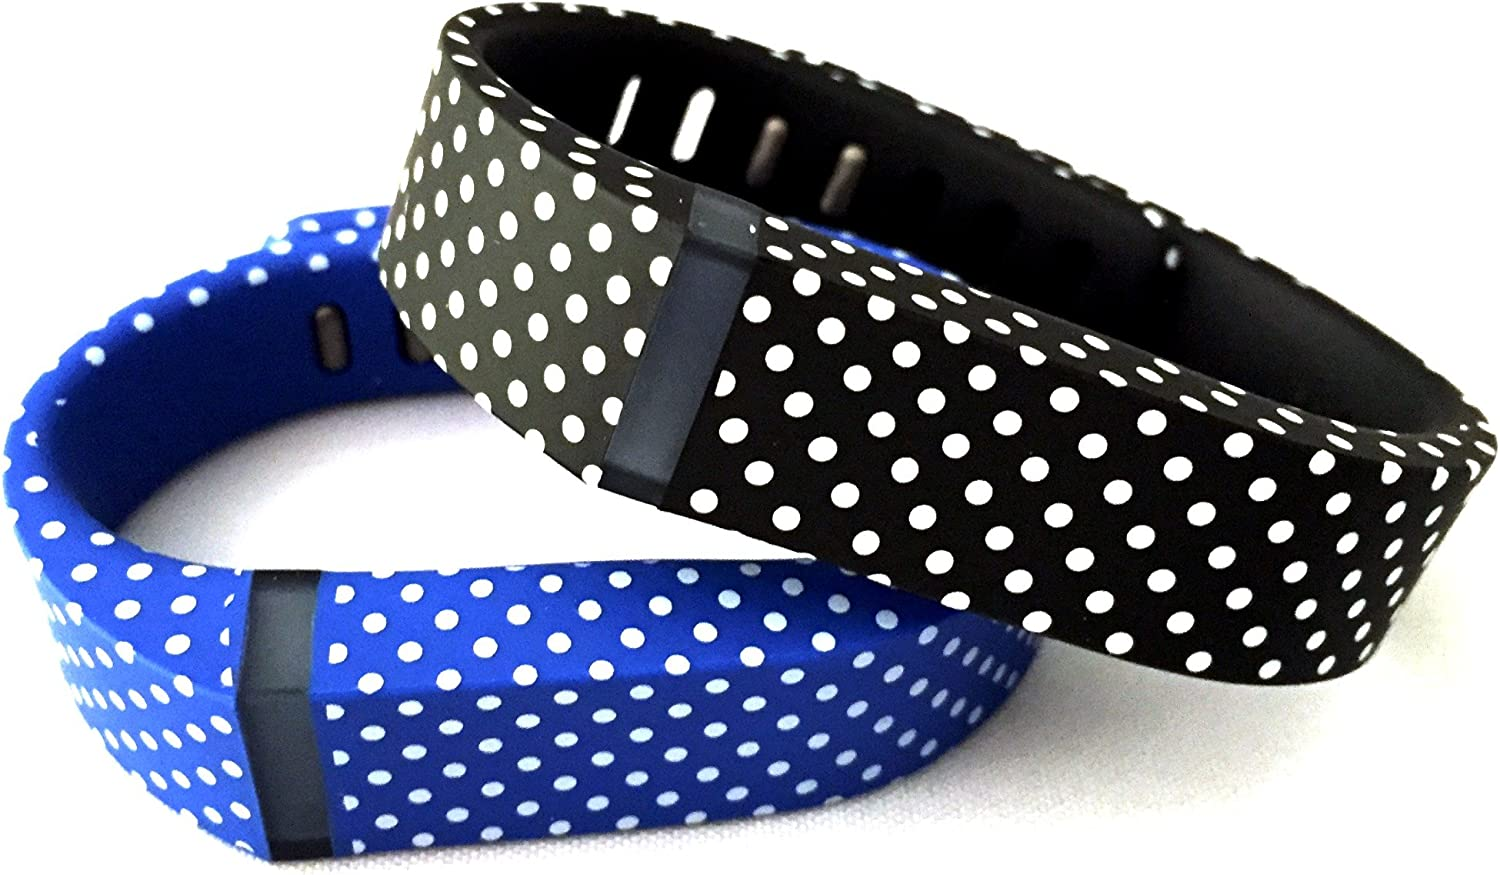 NICKSTON Small 1 Blue with White Dots 1 Black with White Dots Spots Band Compatible with Fitbit Flex Only with Clasps Replacement Strap Bracelet No Tracker